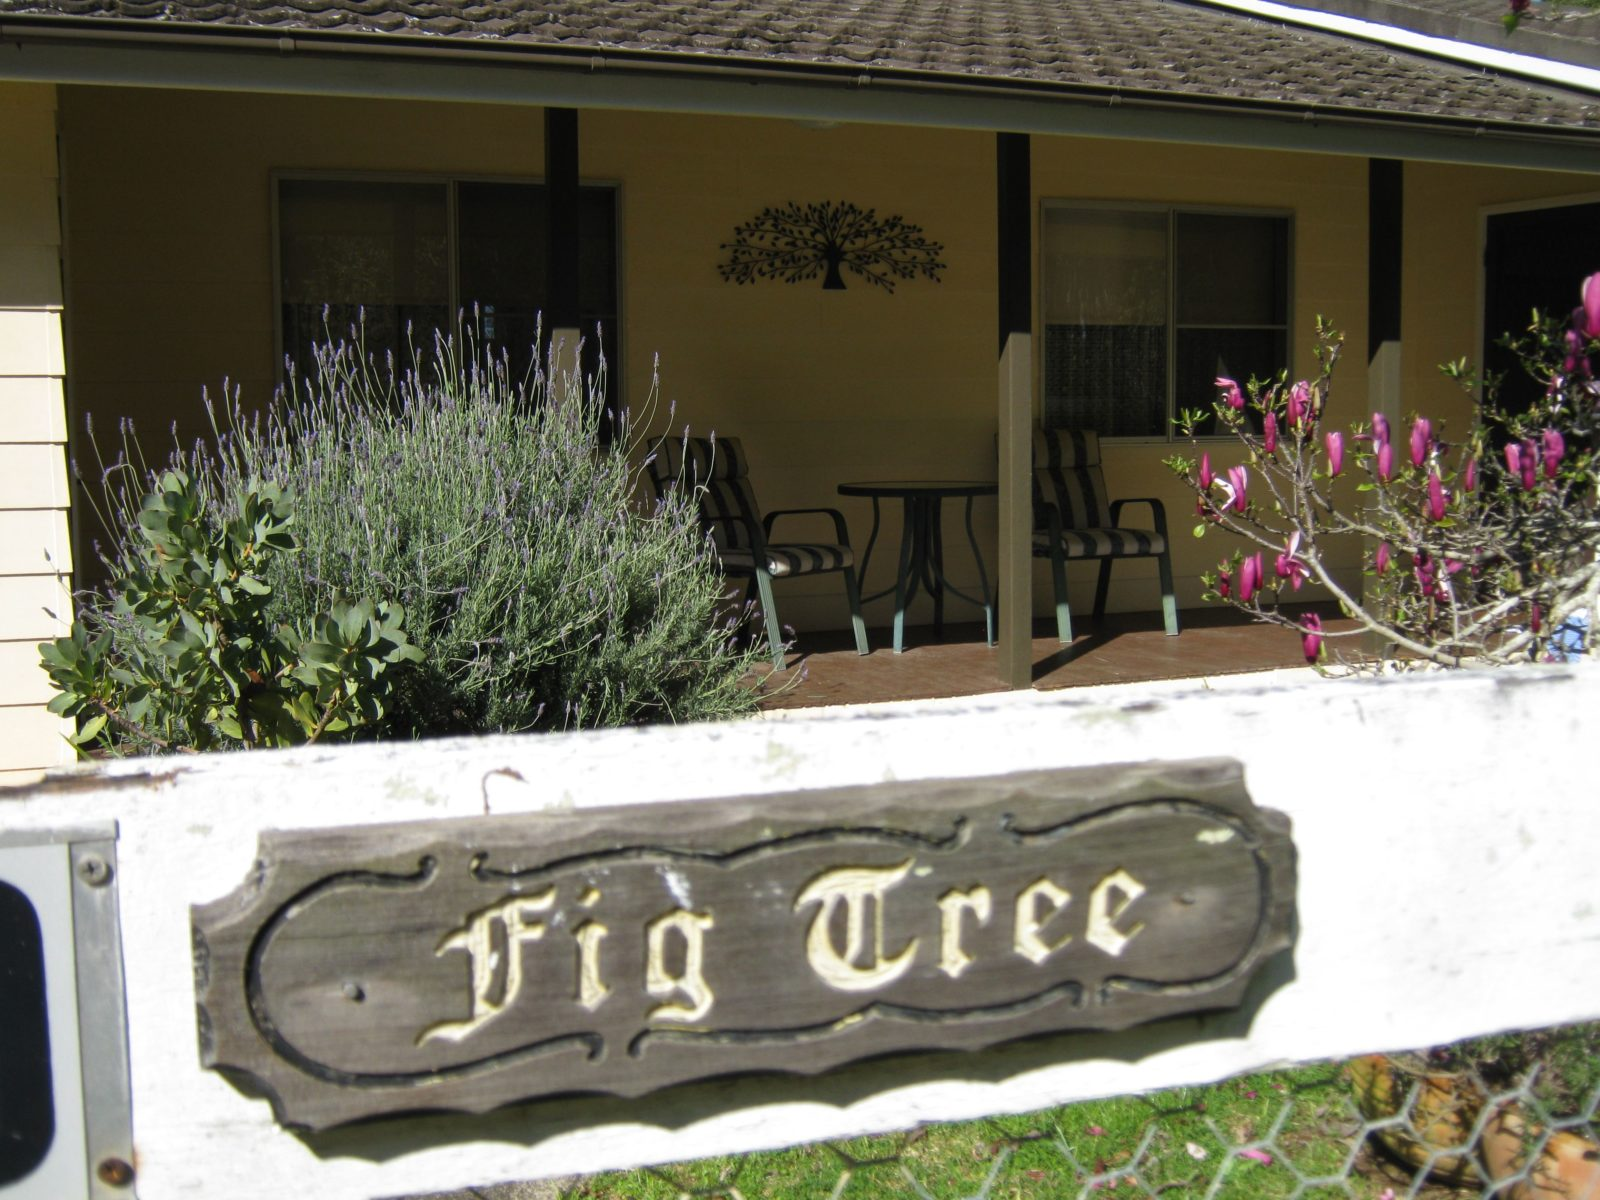 Entrance to Figtree cottage